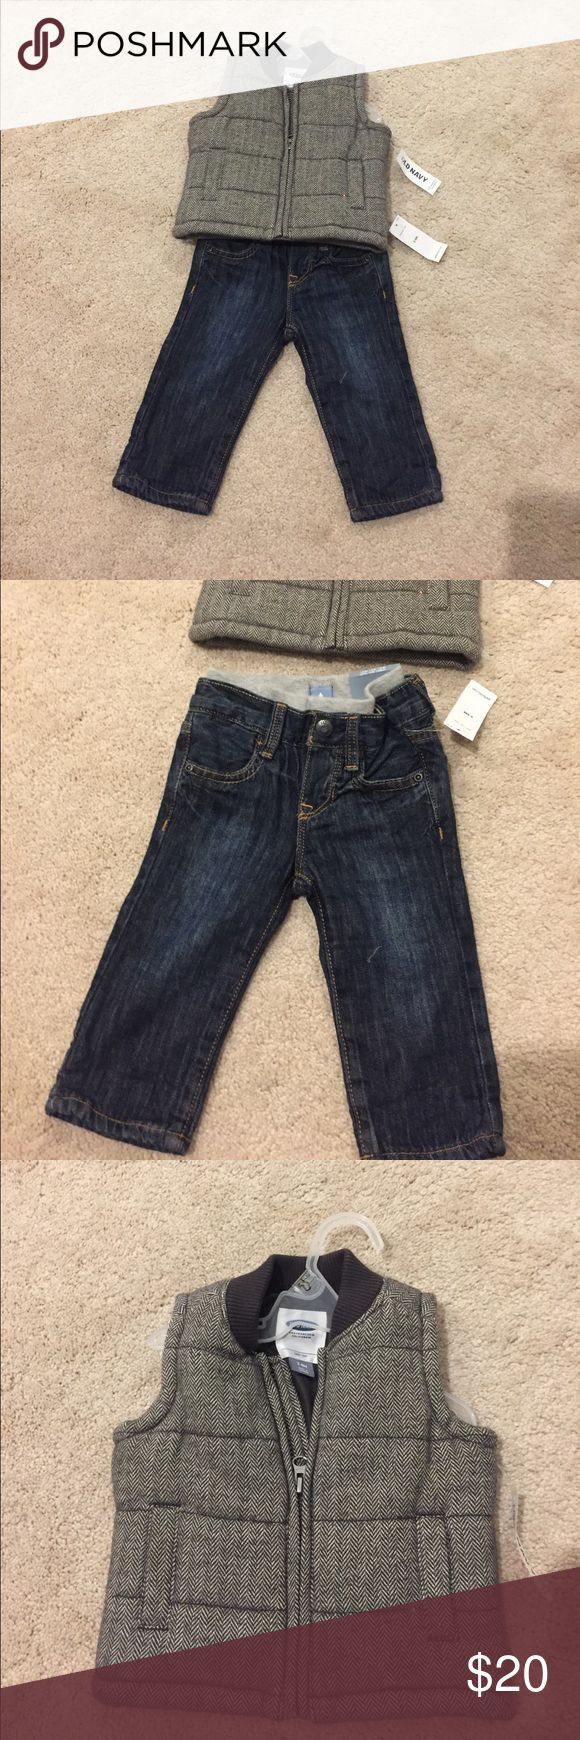 Boys old navy vest and  baby gap jeans 3-6 months New never worn items.. pants have lining (gapfactory) and vest on the thicker side perfect for the fall! Old Navy Jackets & Coats Vests